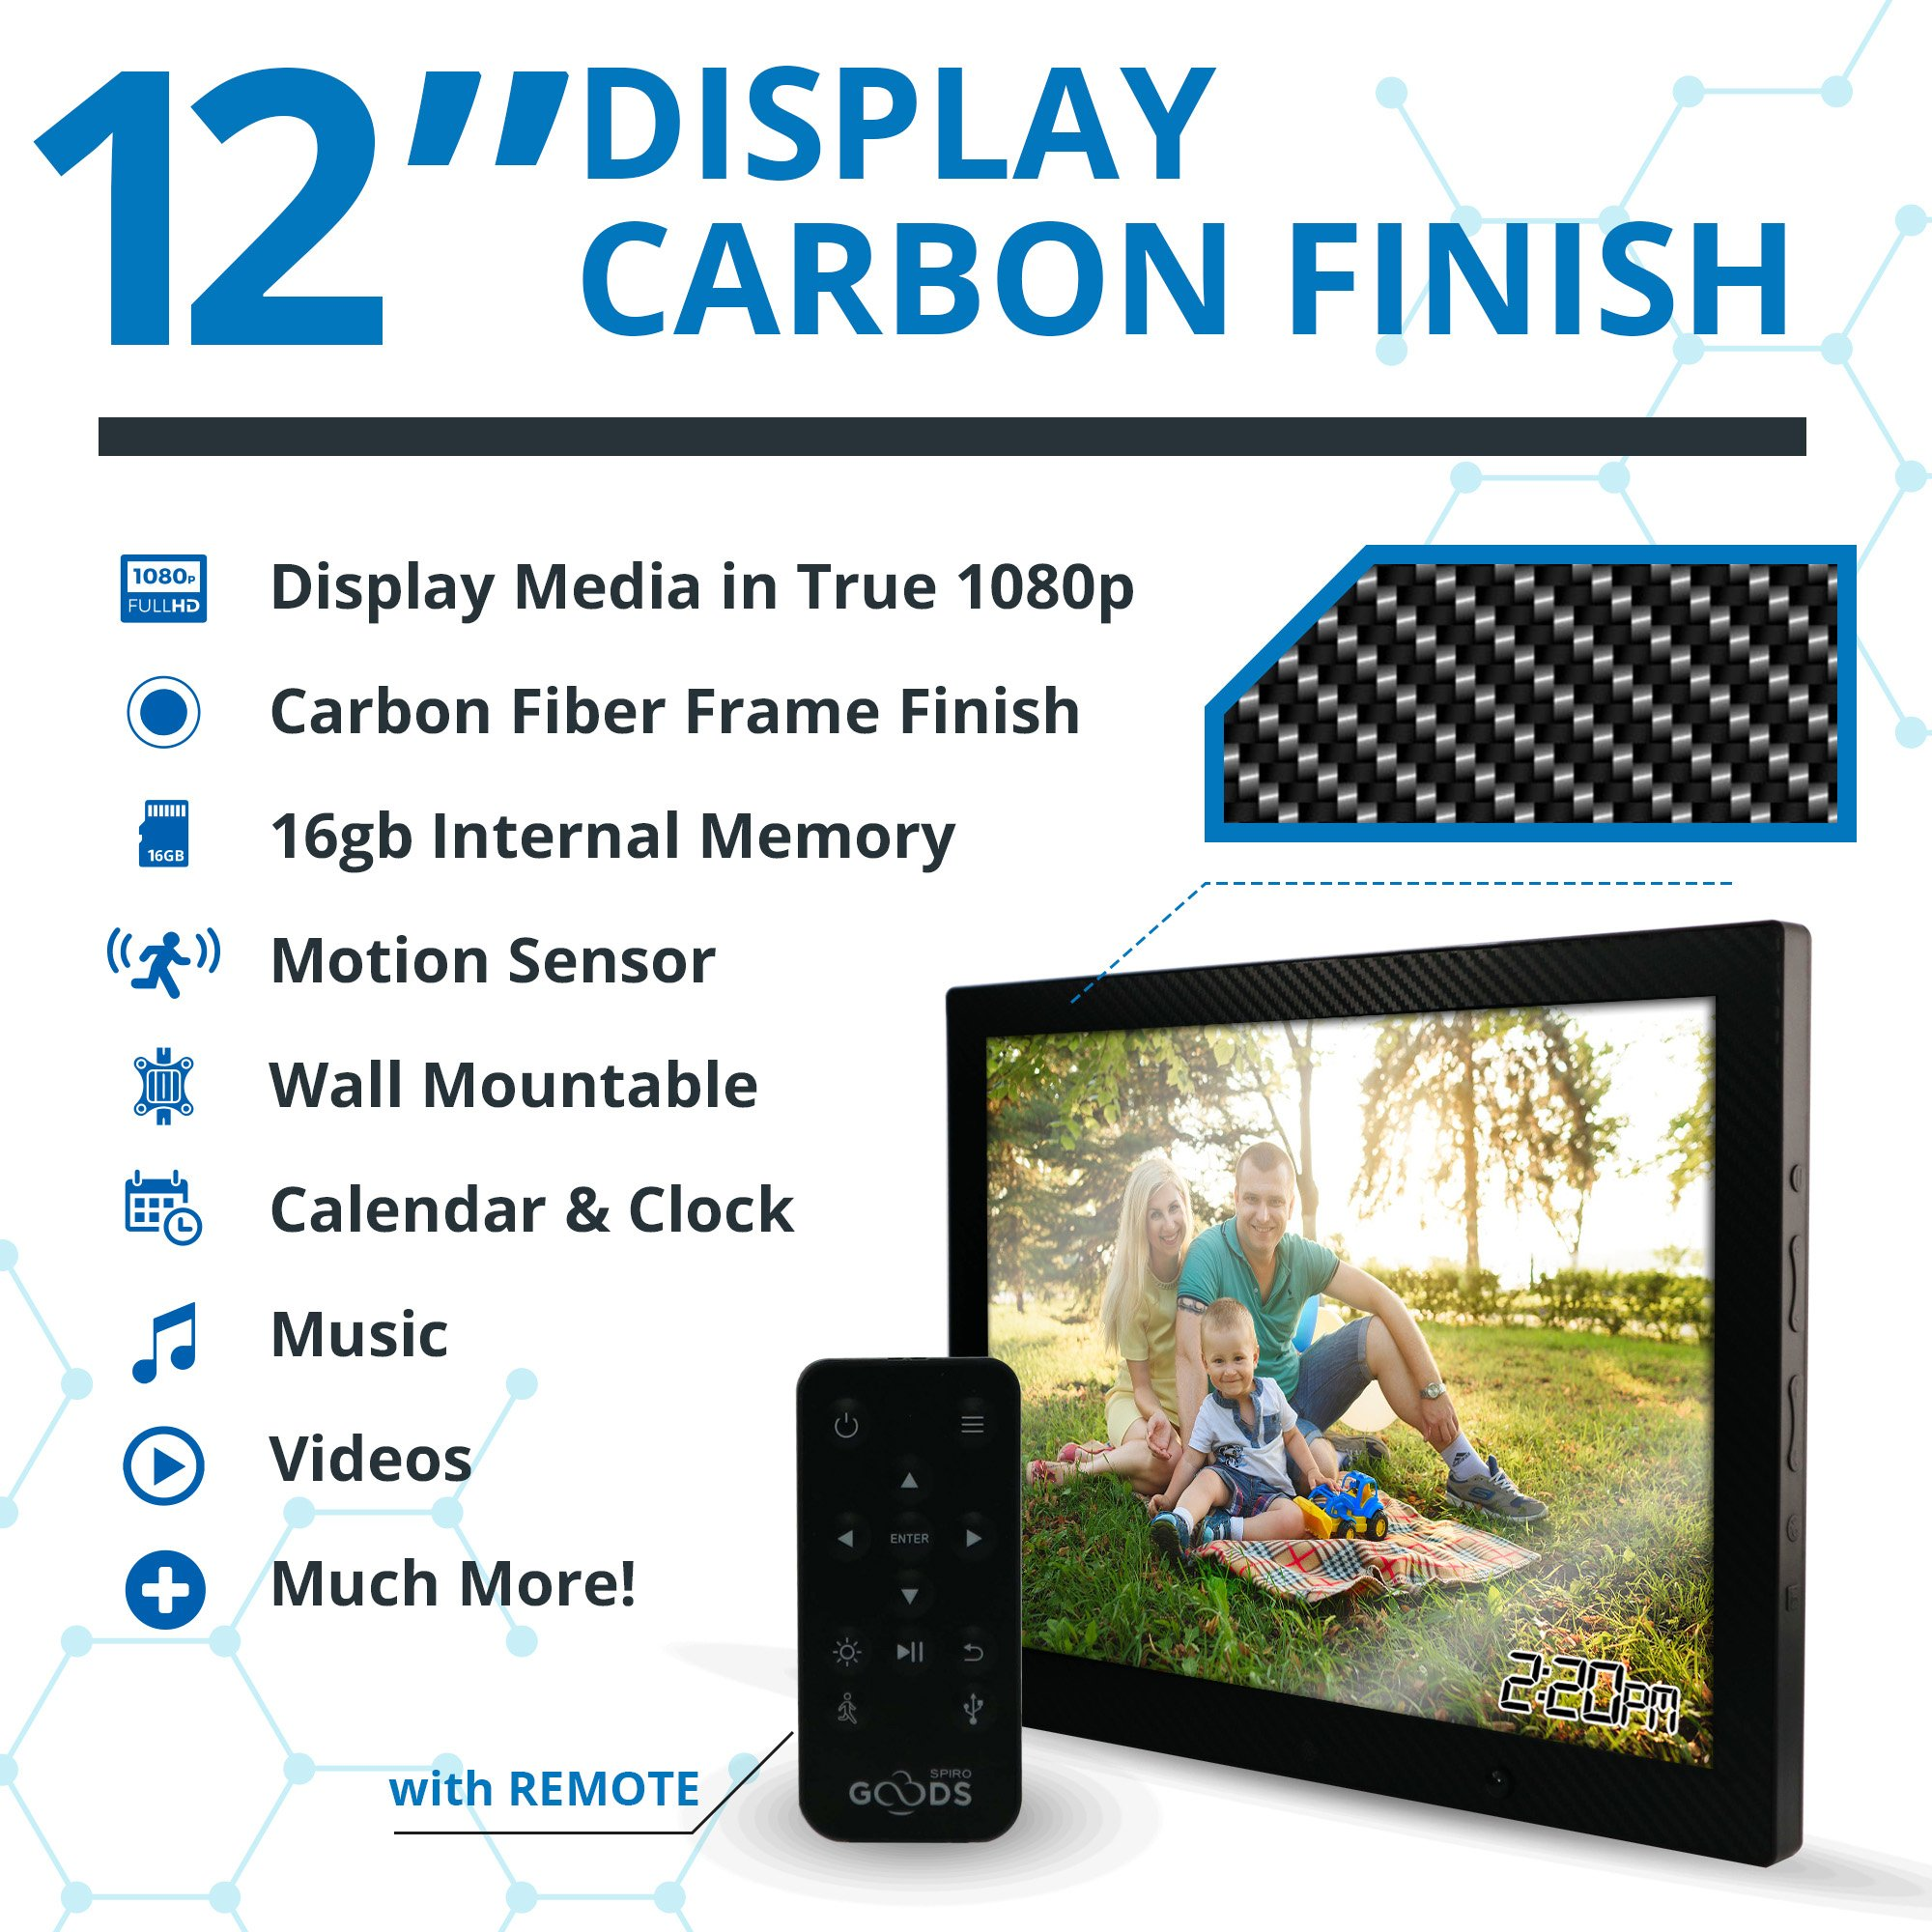 12 inch HD Digital Picture Frame Carbon Fiber - 1080p High Definition Electronic Photo Frame With Video, 16GB Memory, Motion Sensor, Built-In Speakers & Remote Control - (Black) by Spiro Goods (Image #3)